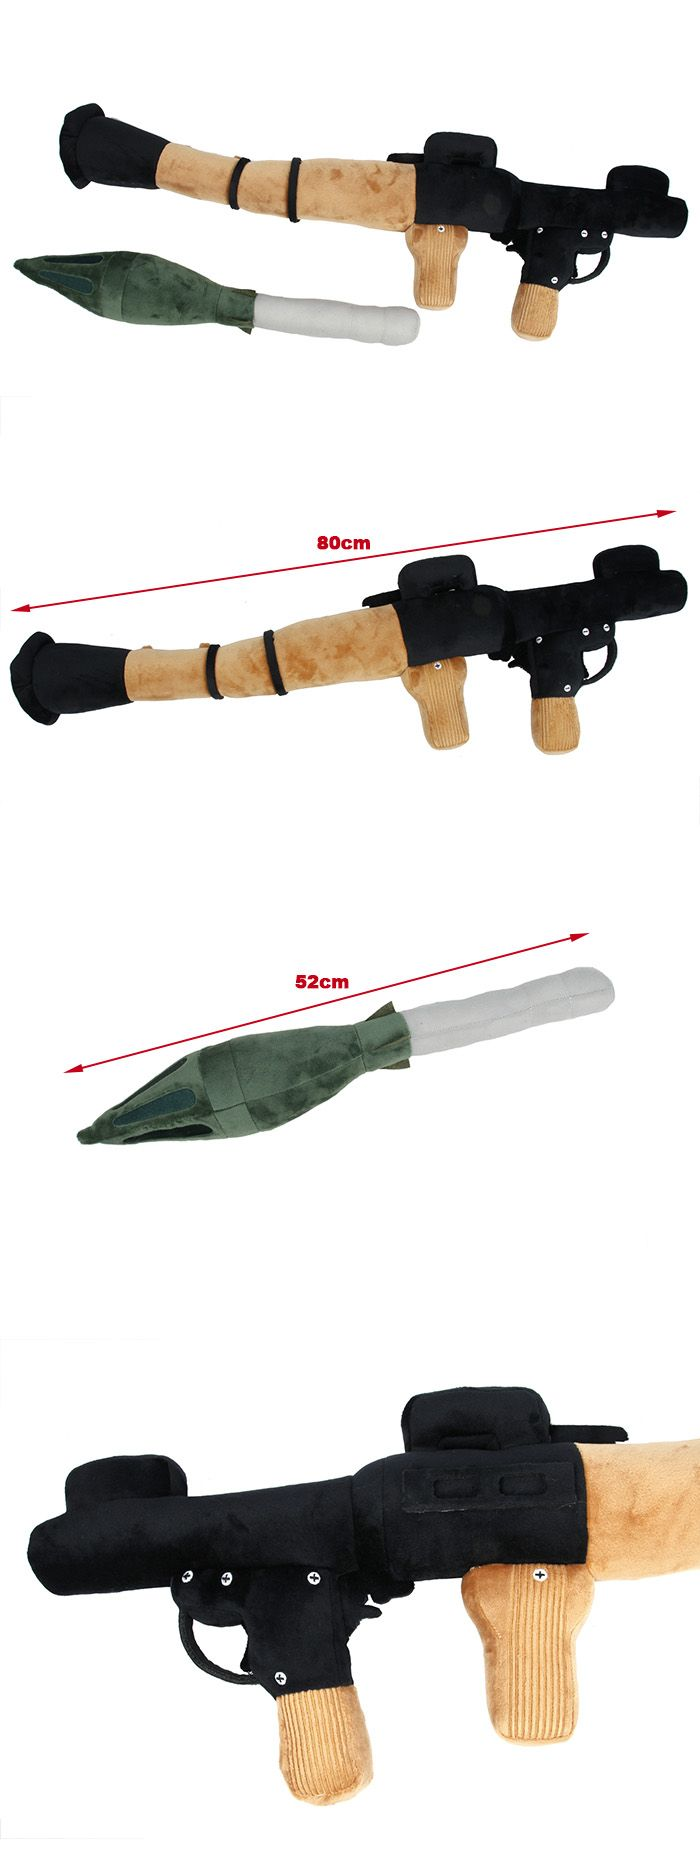 This TMC RPG Style Pillow is RPG rocket replica dummy. It don't have any function, just a pillow which can use for milsim.